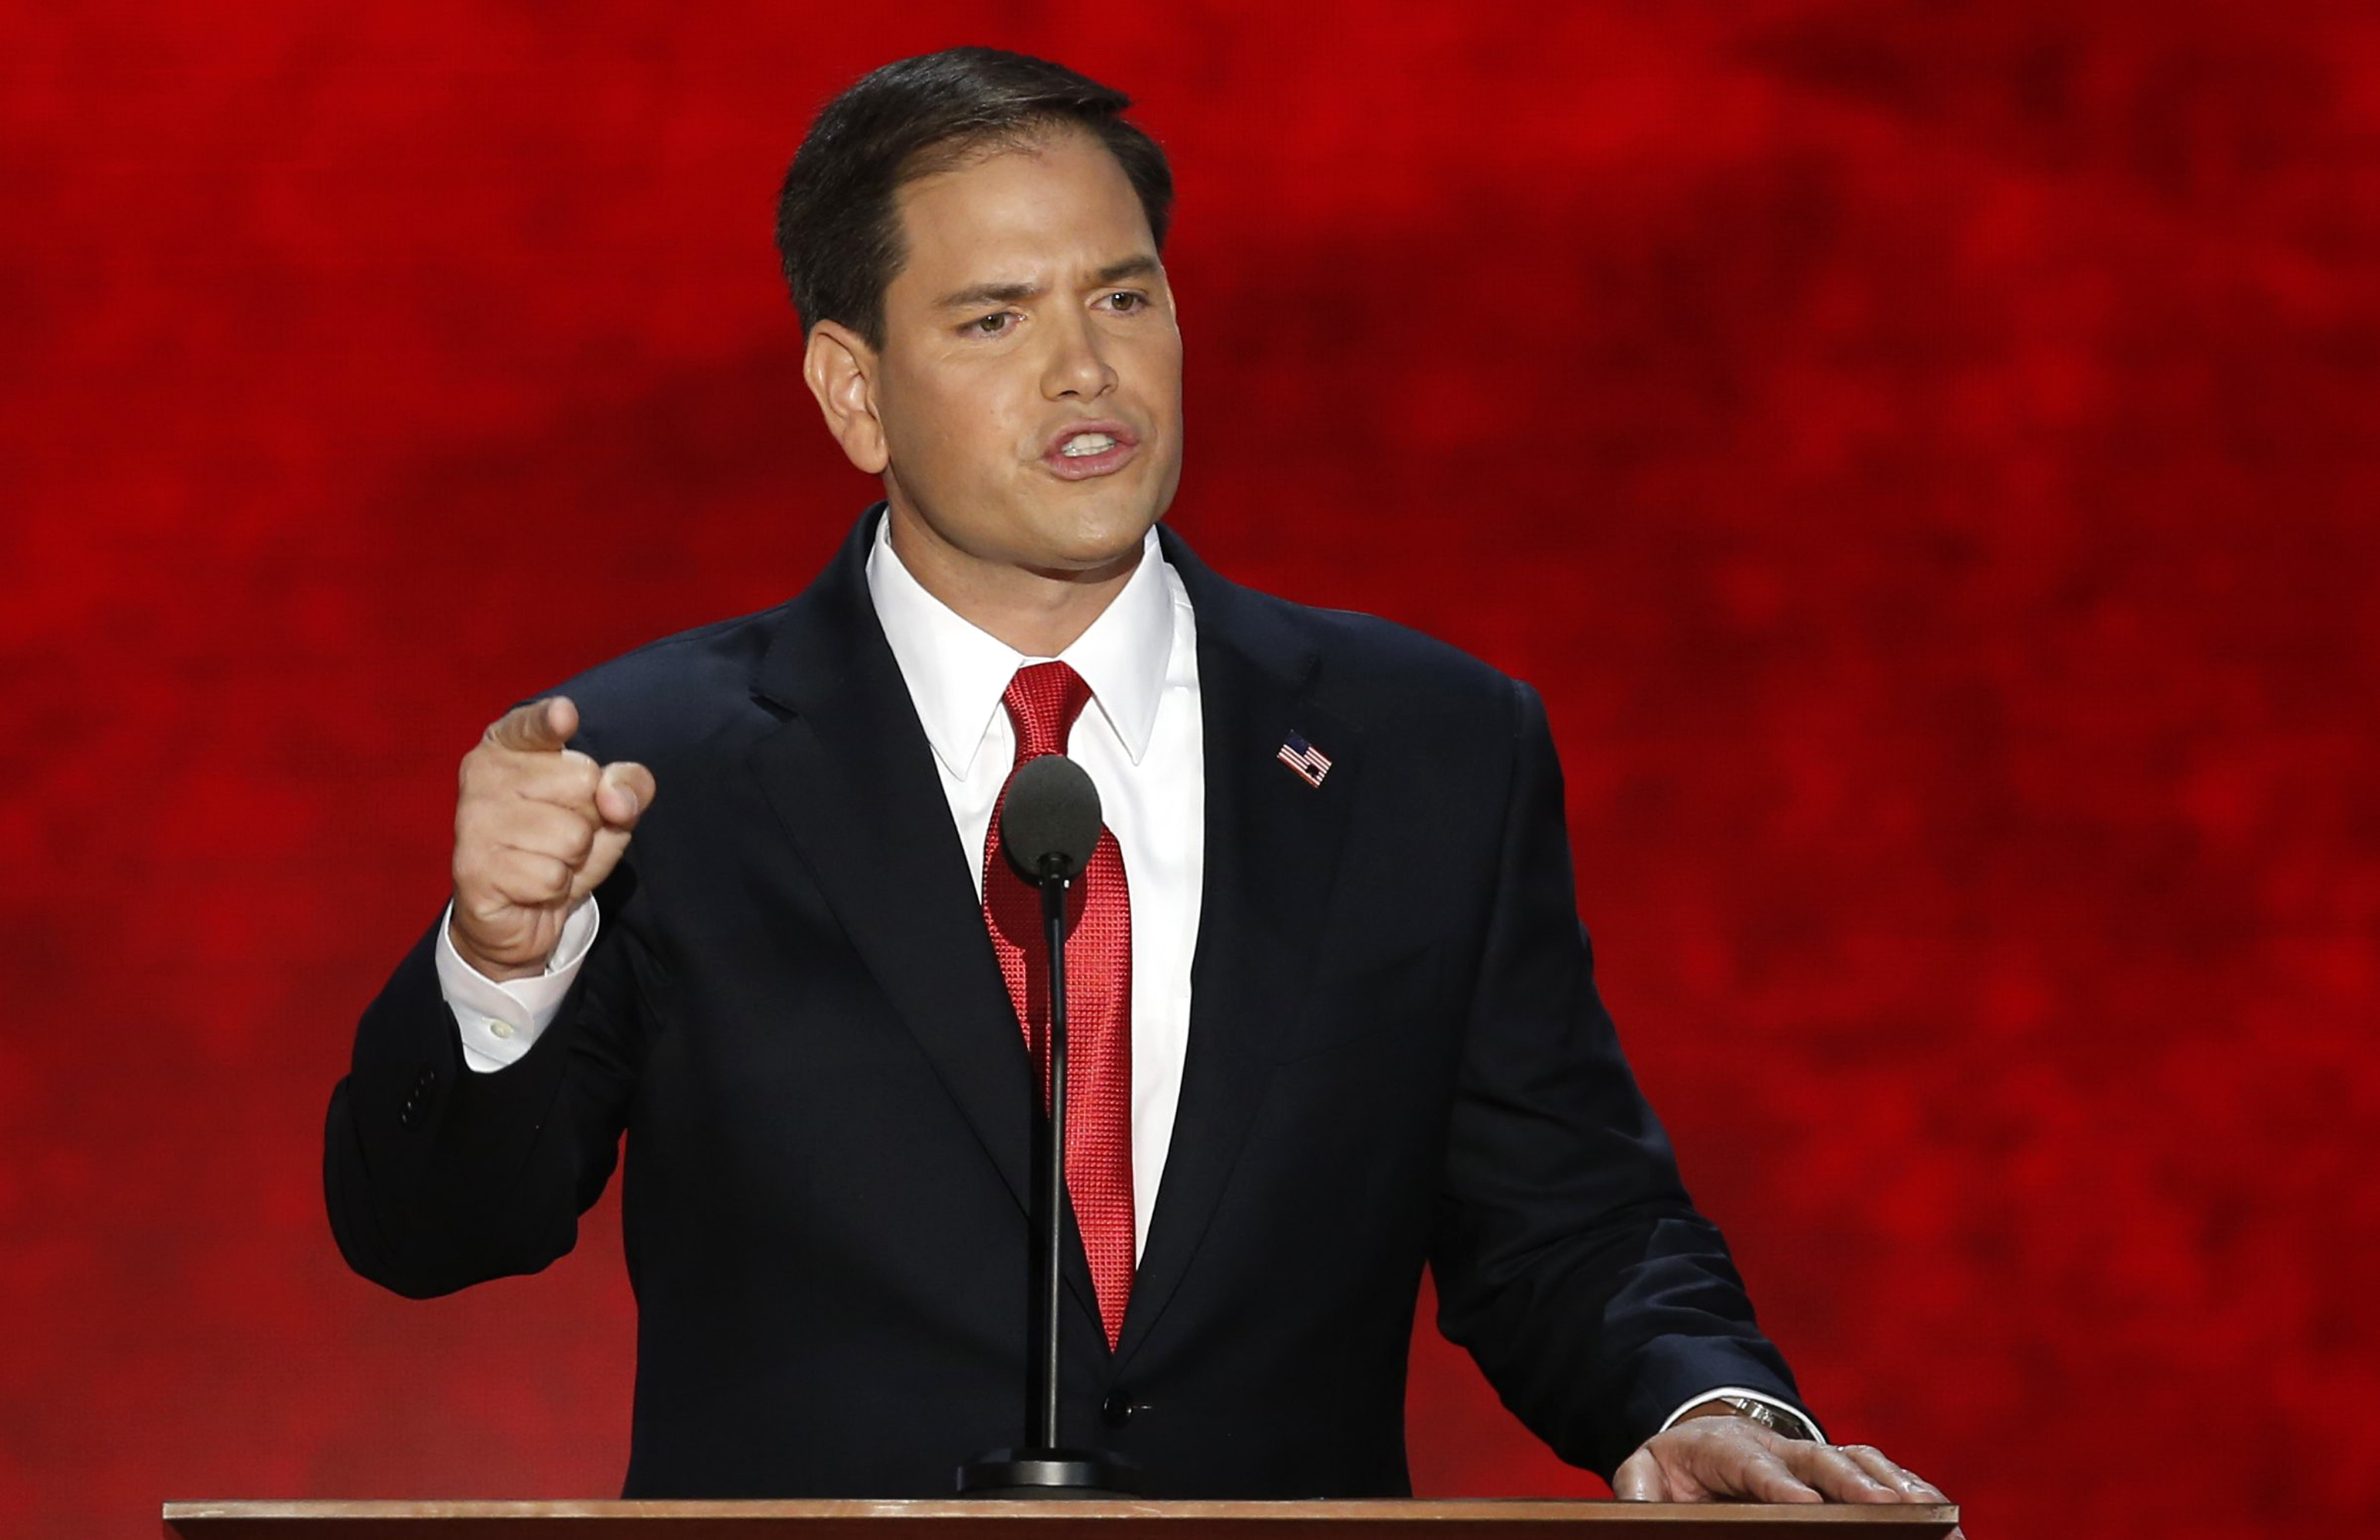 Marco Rubio Announces His Approach to Foreign Policy